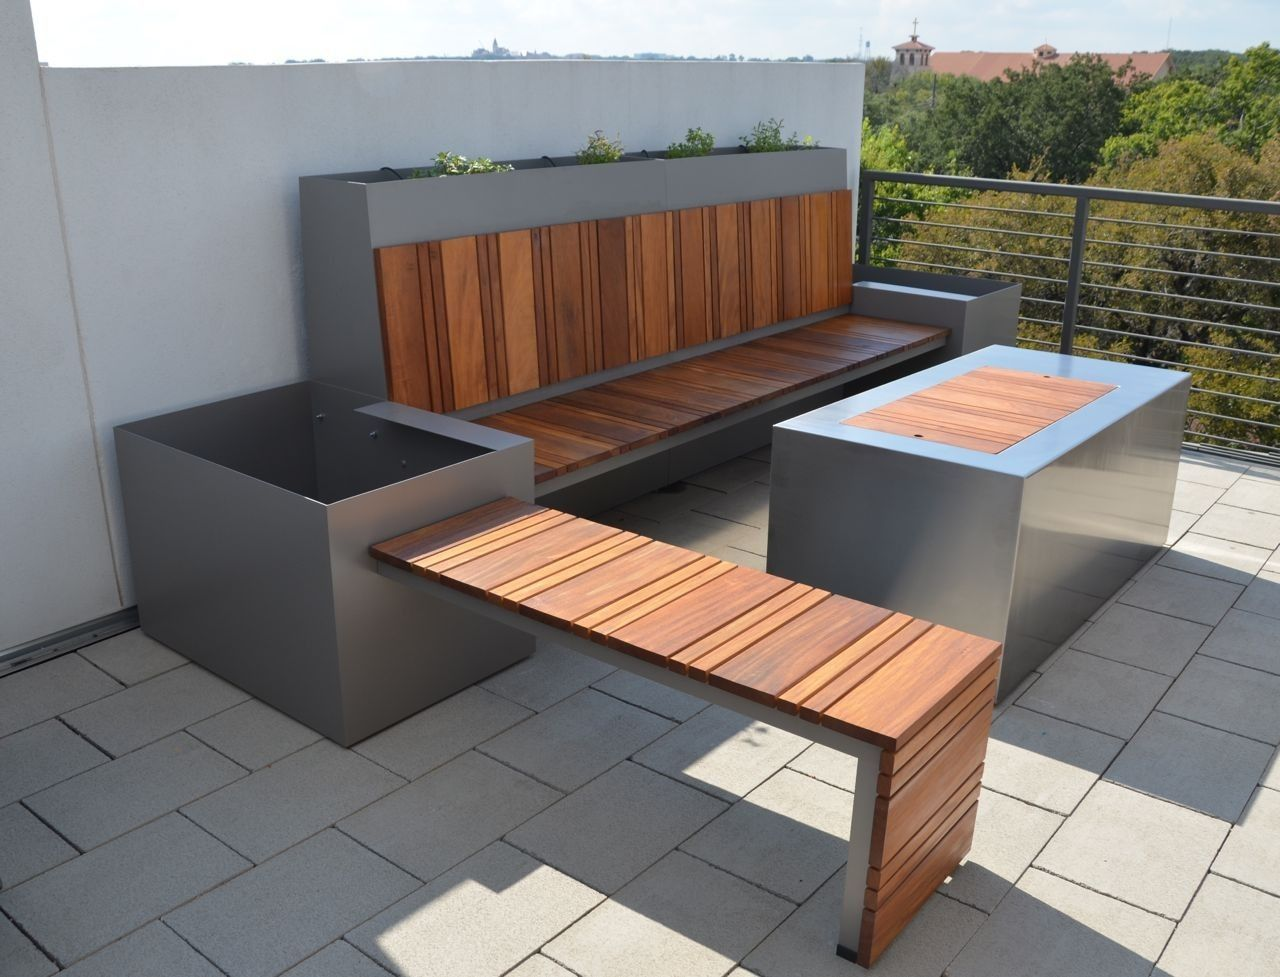 Handmade Outdoor Seating Area And Custom Fire Pit By